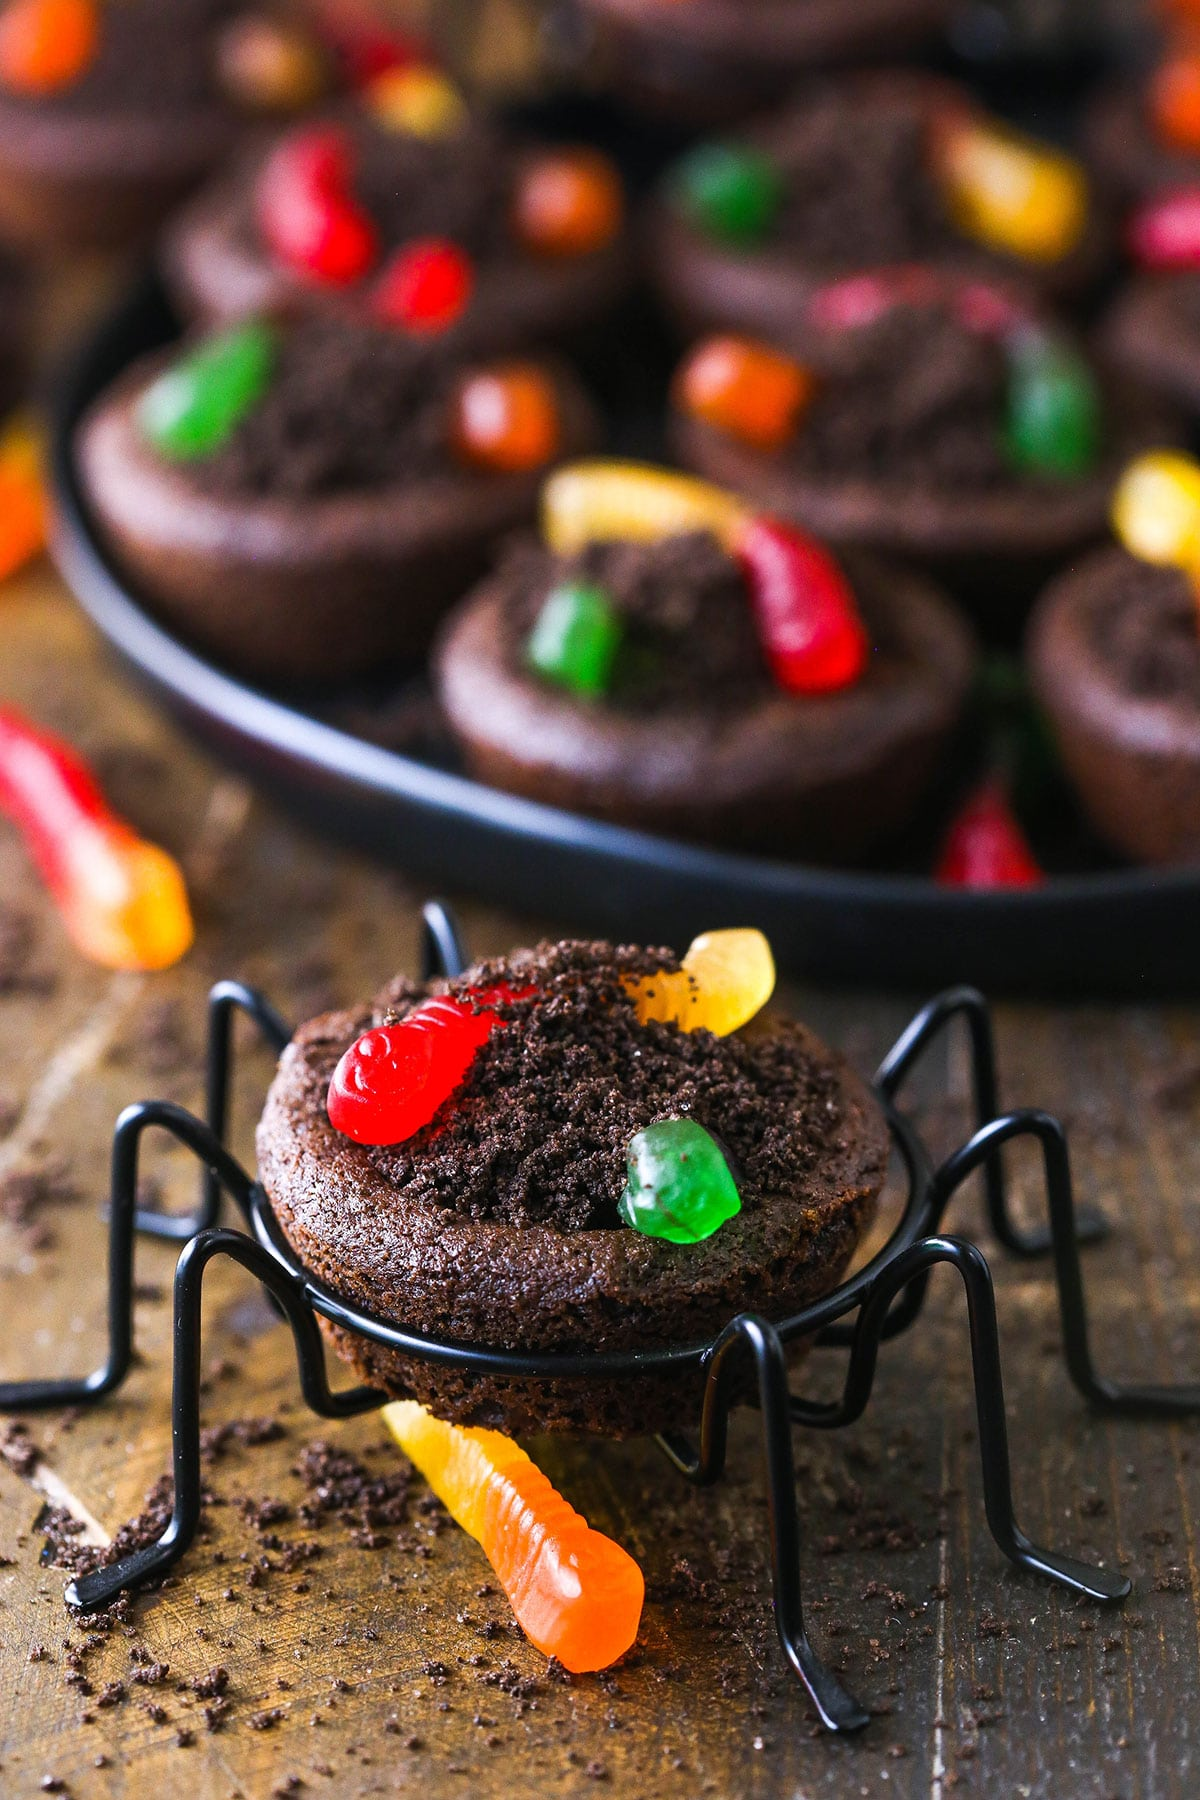 A dirt cookie cup on a small spider stand with a tray full of cookies in the background